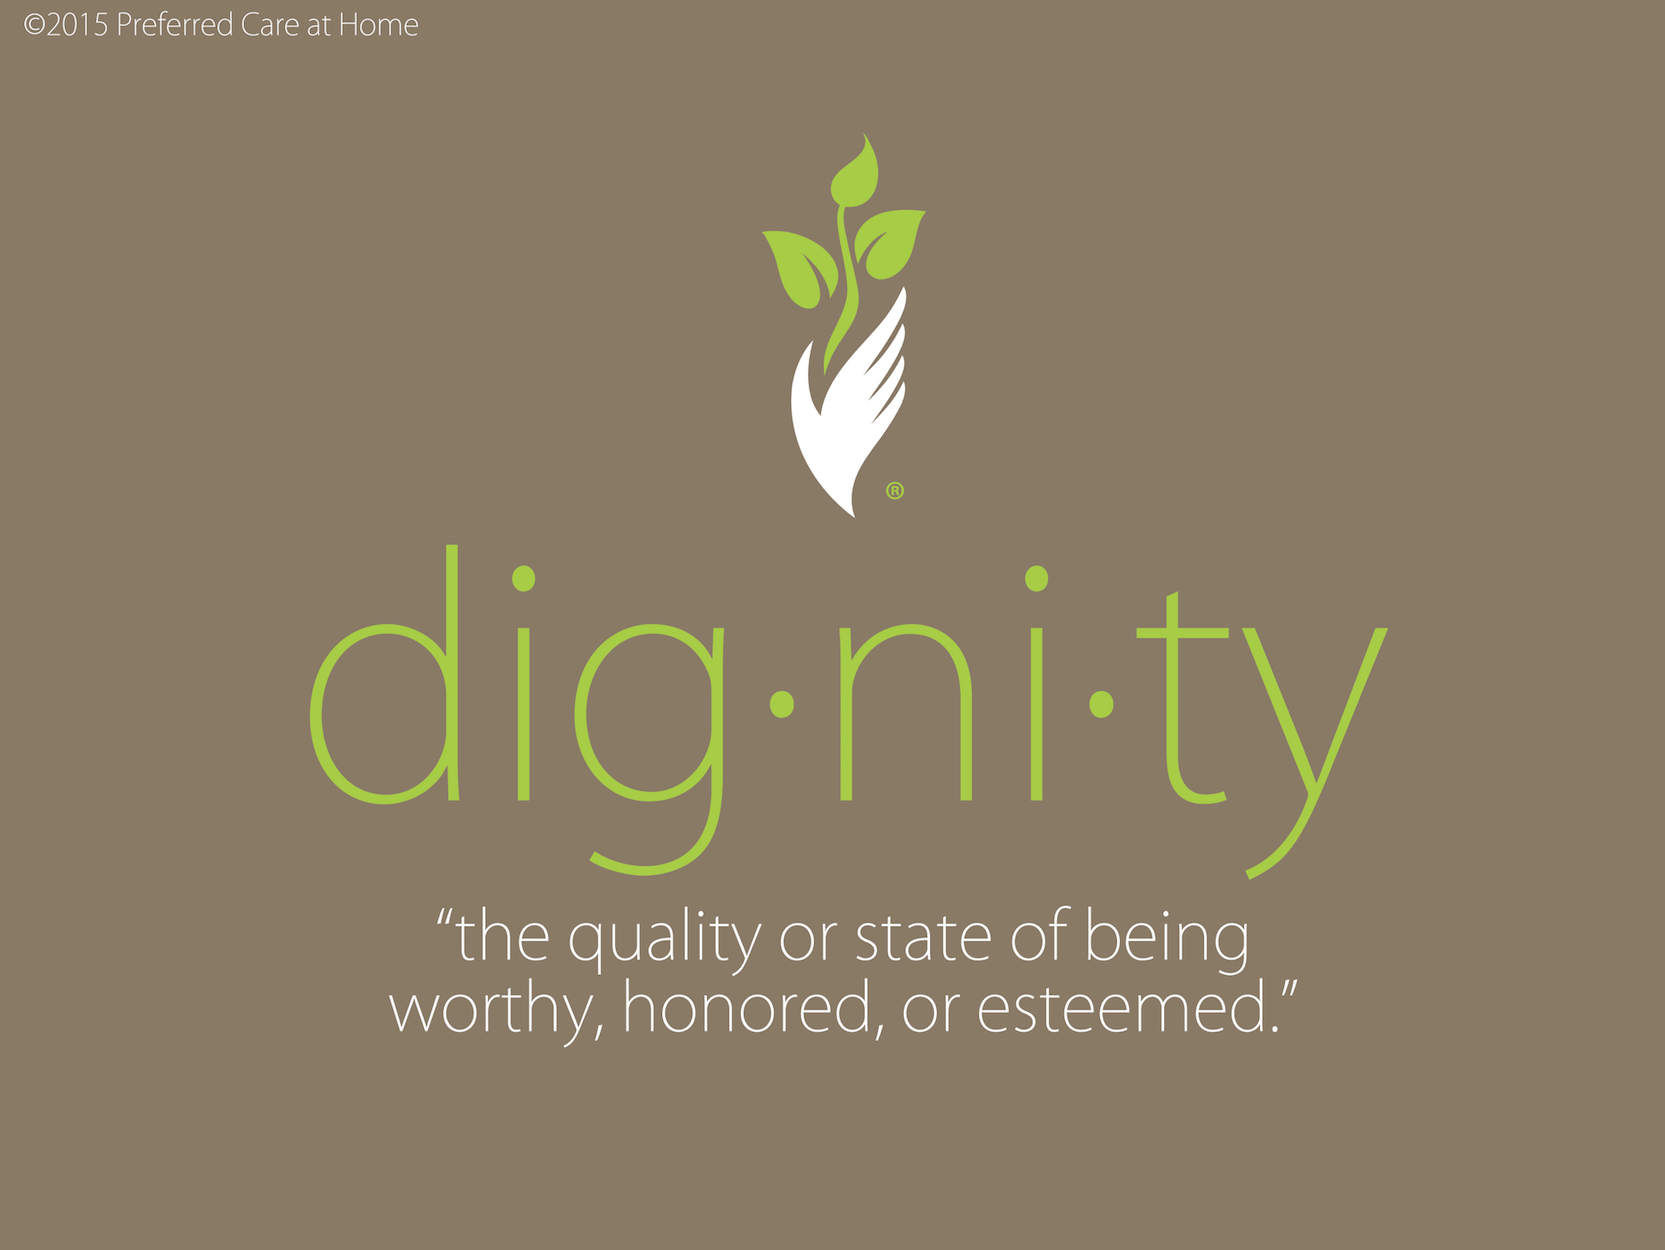 Committed to Dignity in Home Care